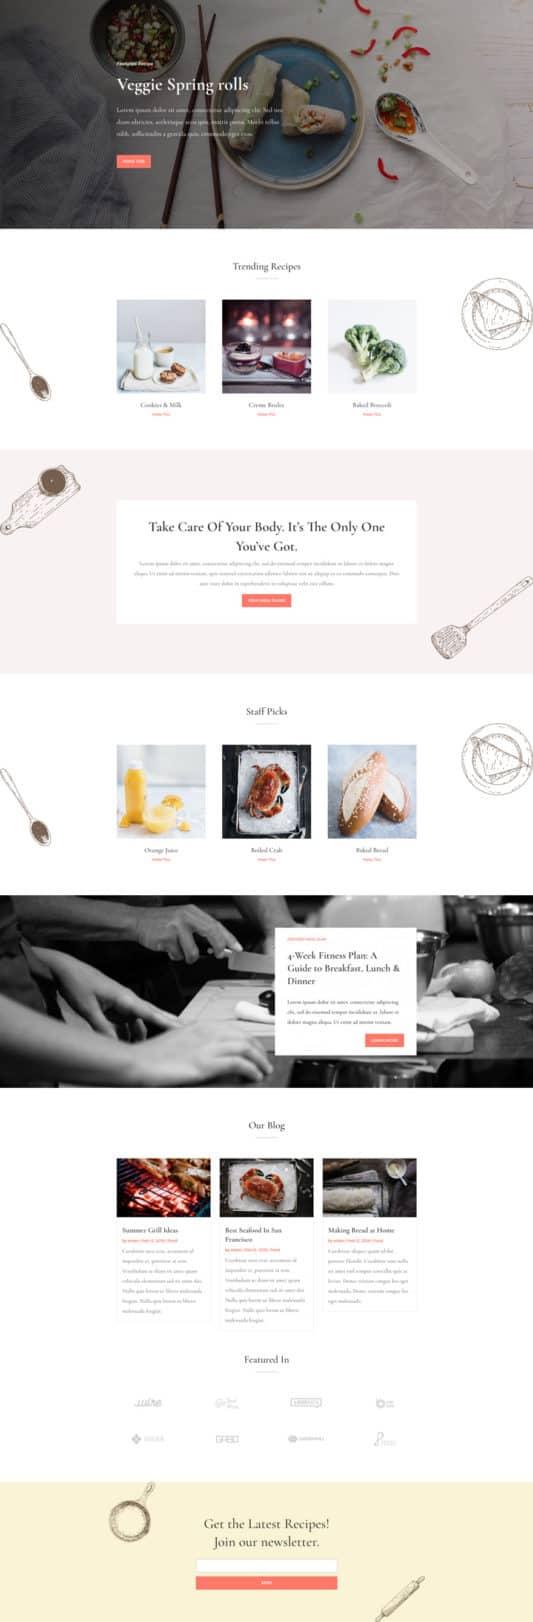 The Food Recipes Page Style: Homepage Design 1